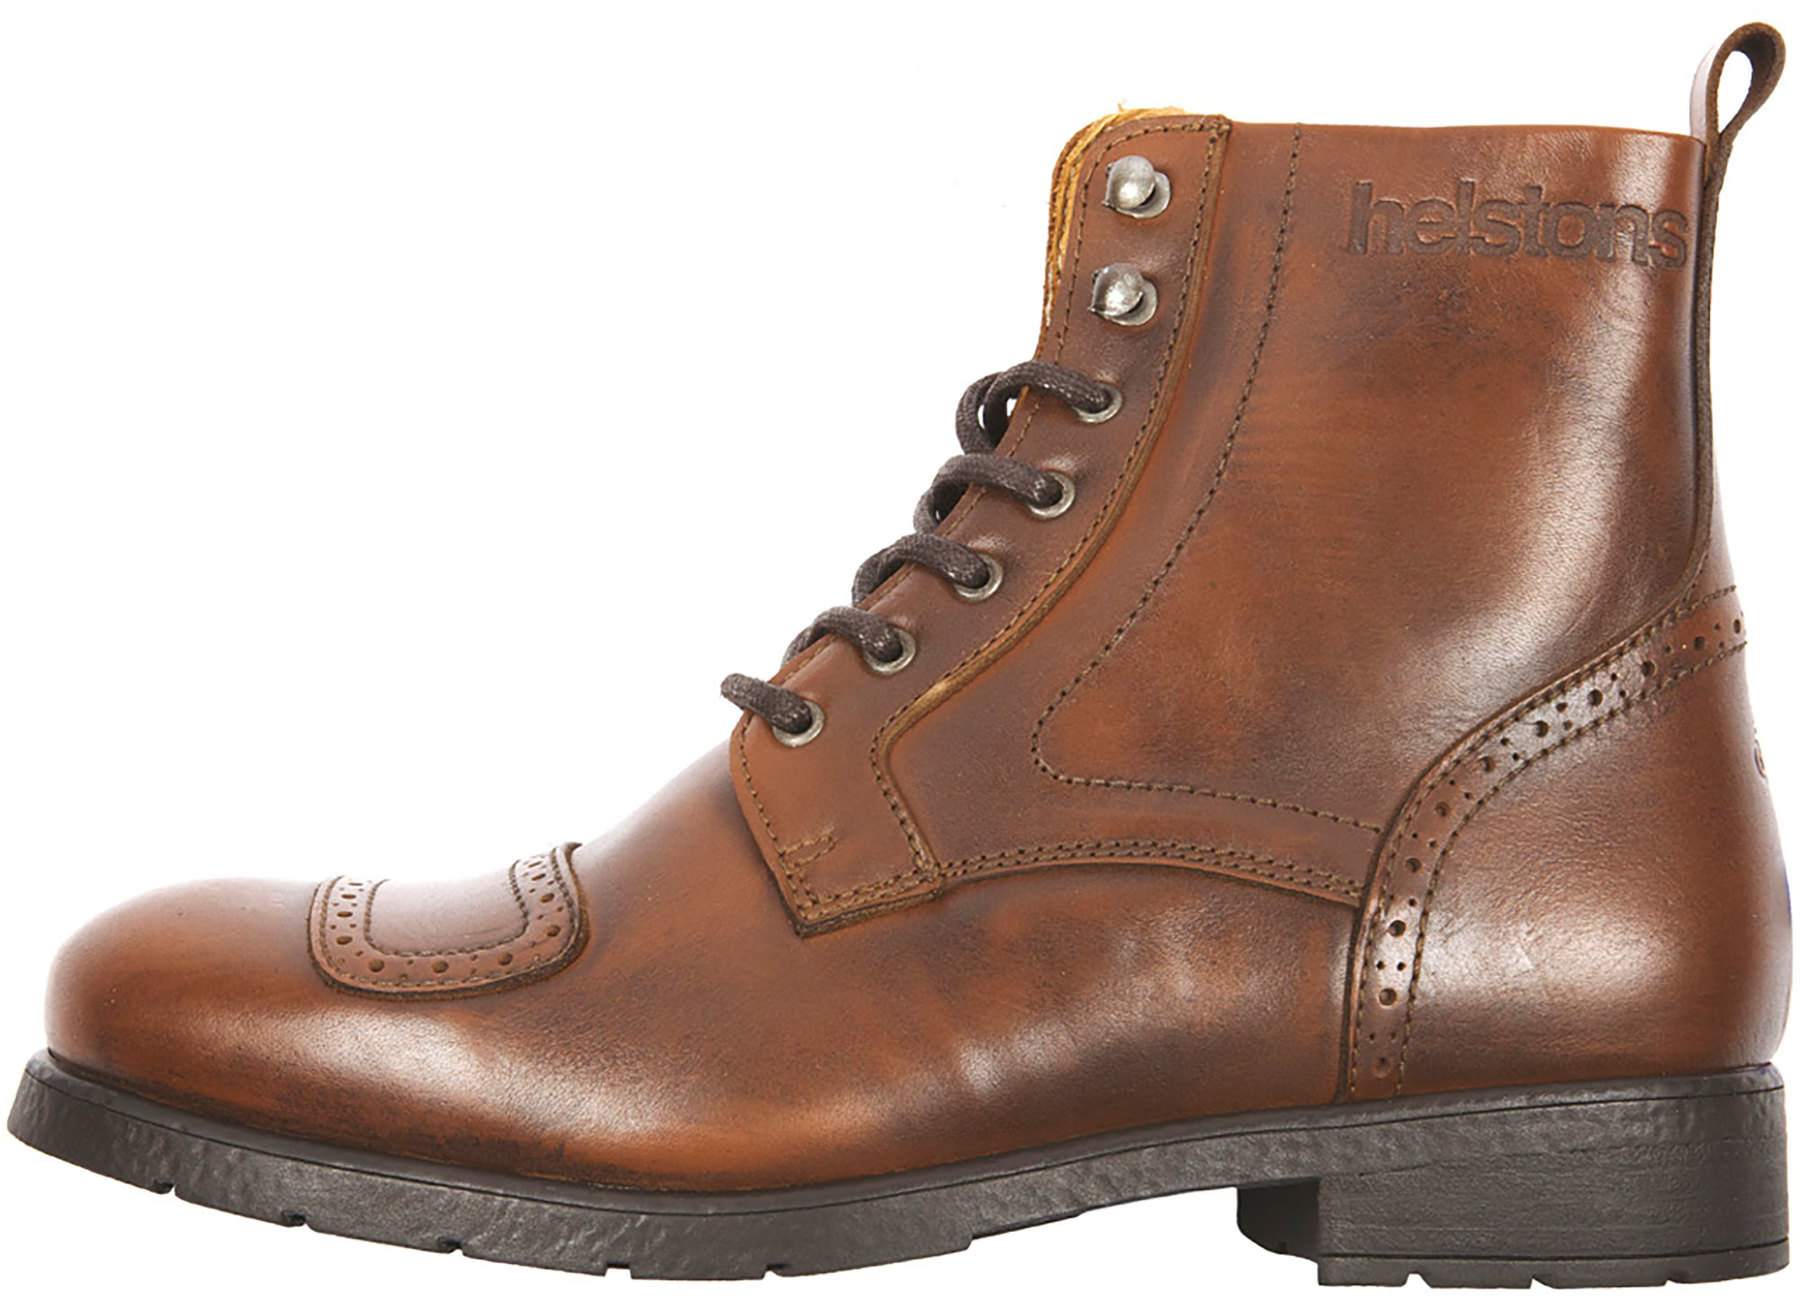 Helstons Travel Aniline Tan Motorcycle Shoes 42